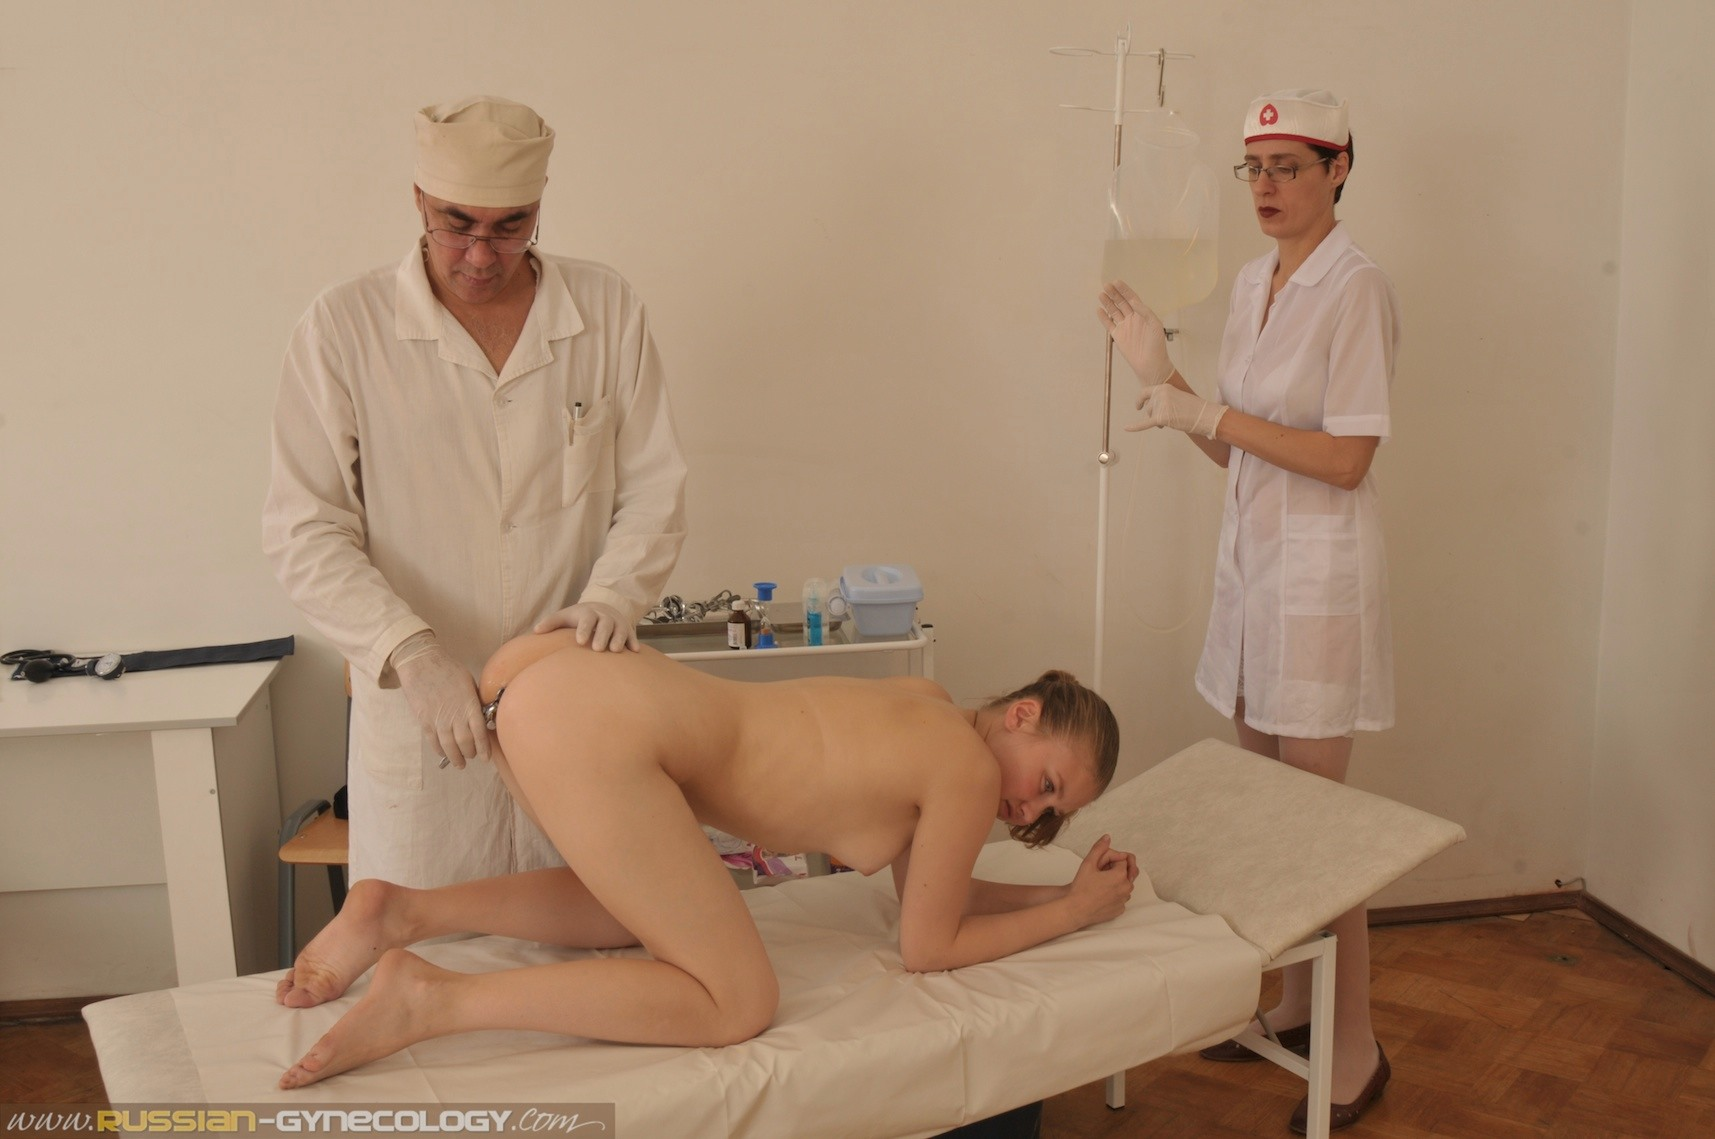 russian gynecology site hg galleries 003 photo12